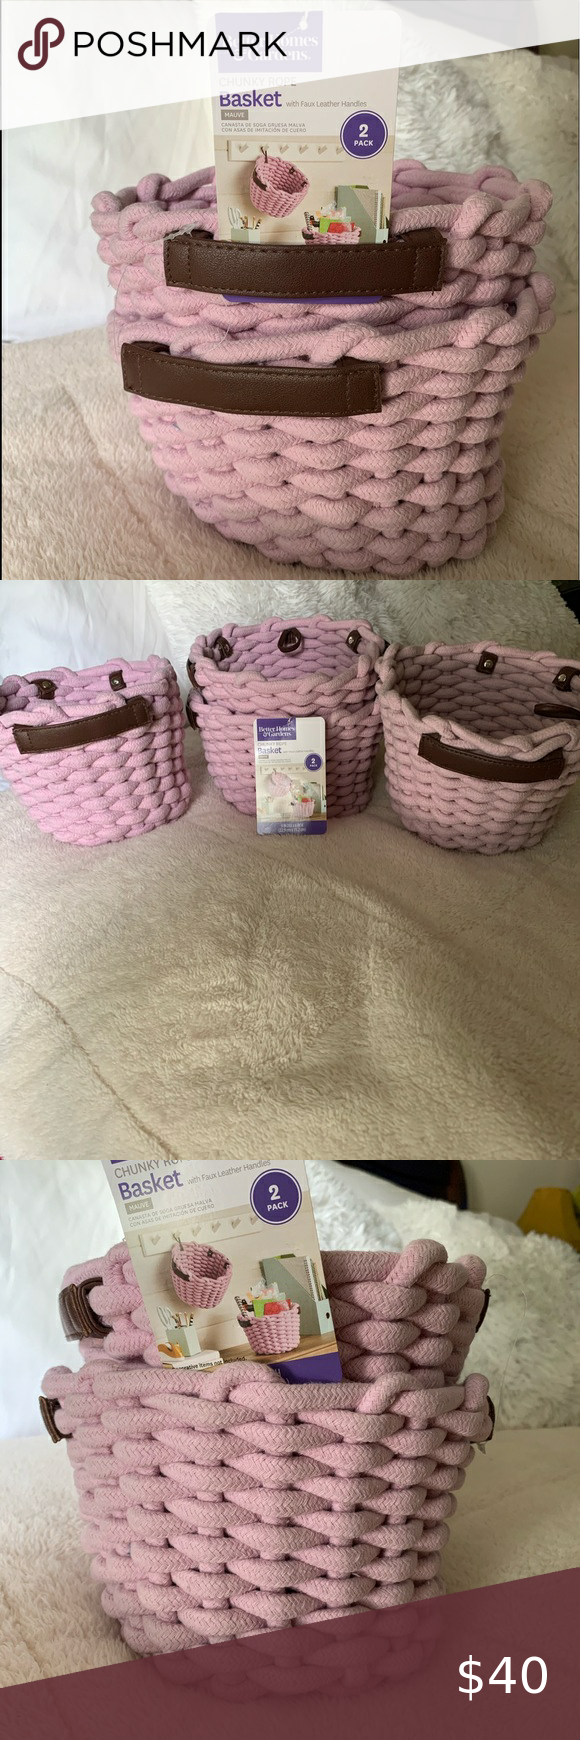 471ce043492f96e033f1759f38329ea5 - Better Homes And Gardens Chunky Rope Basket